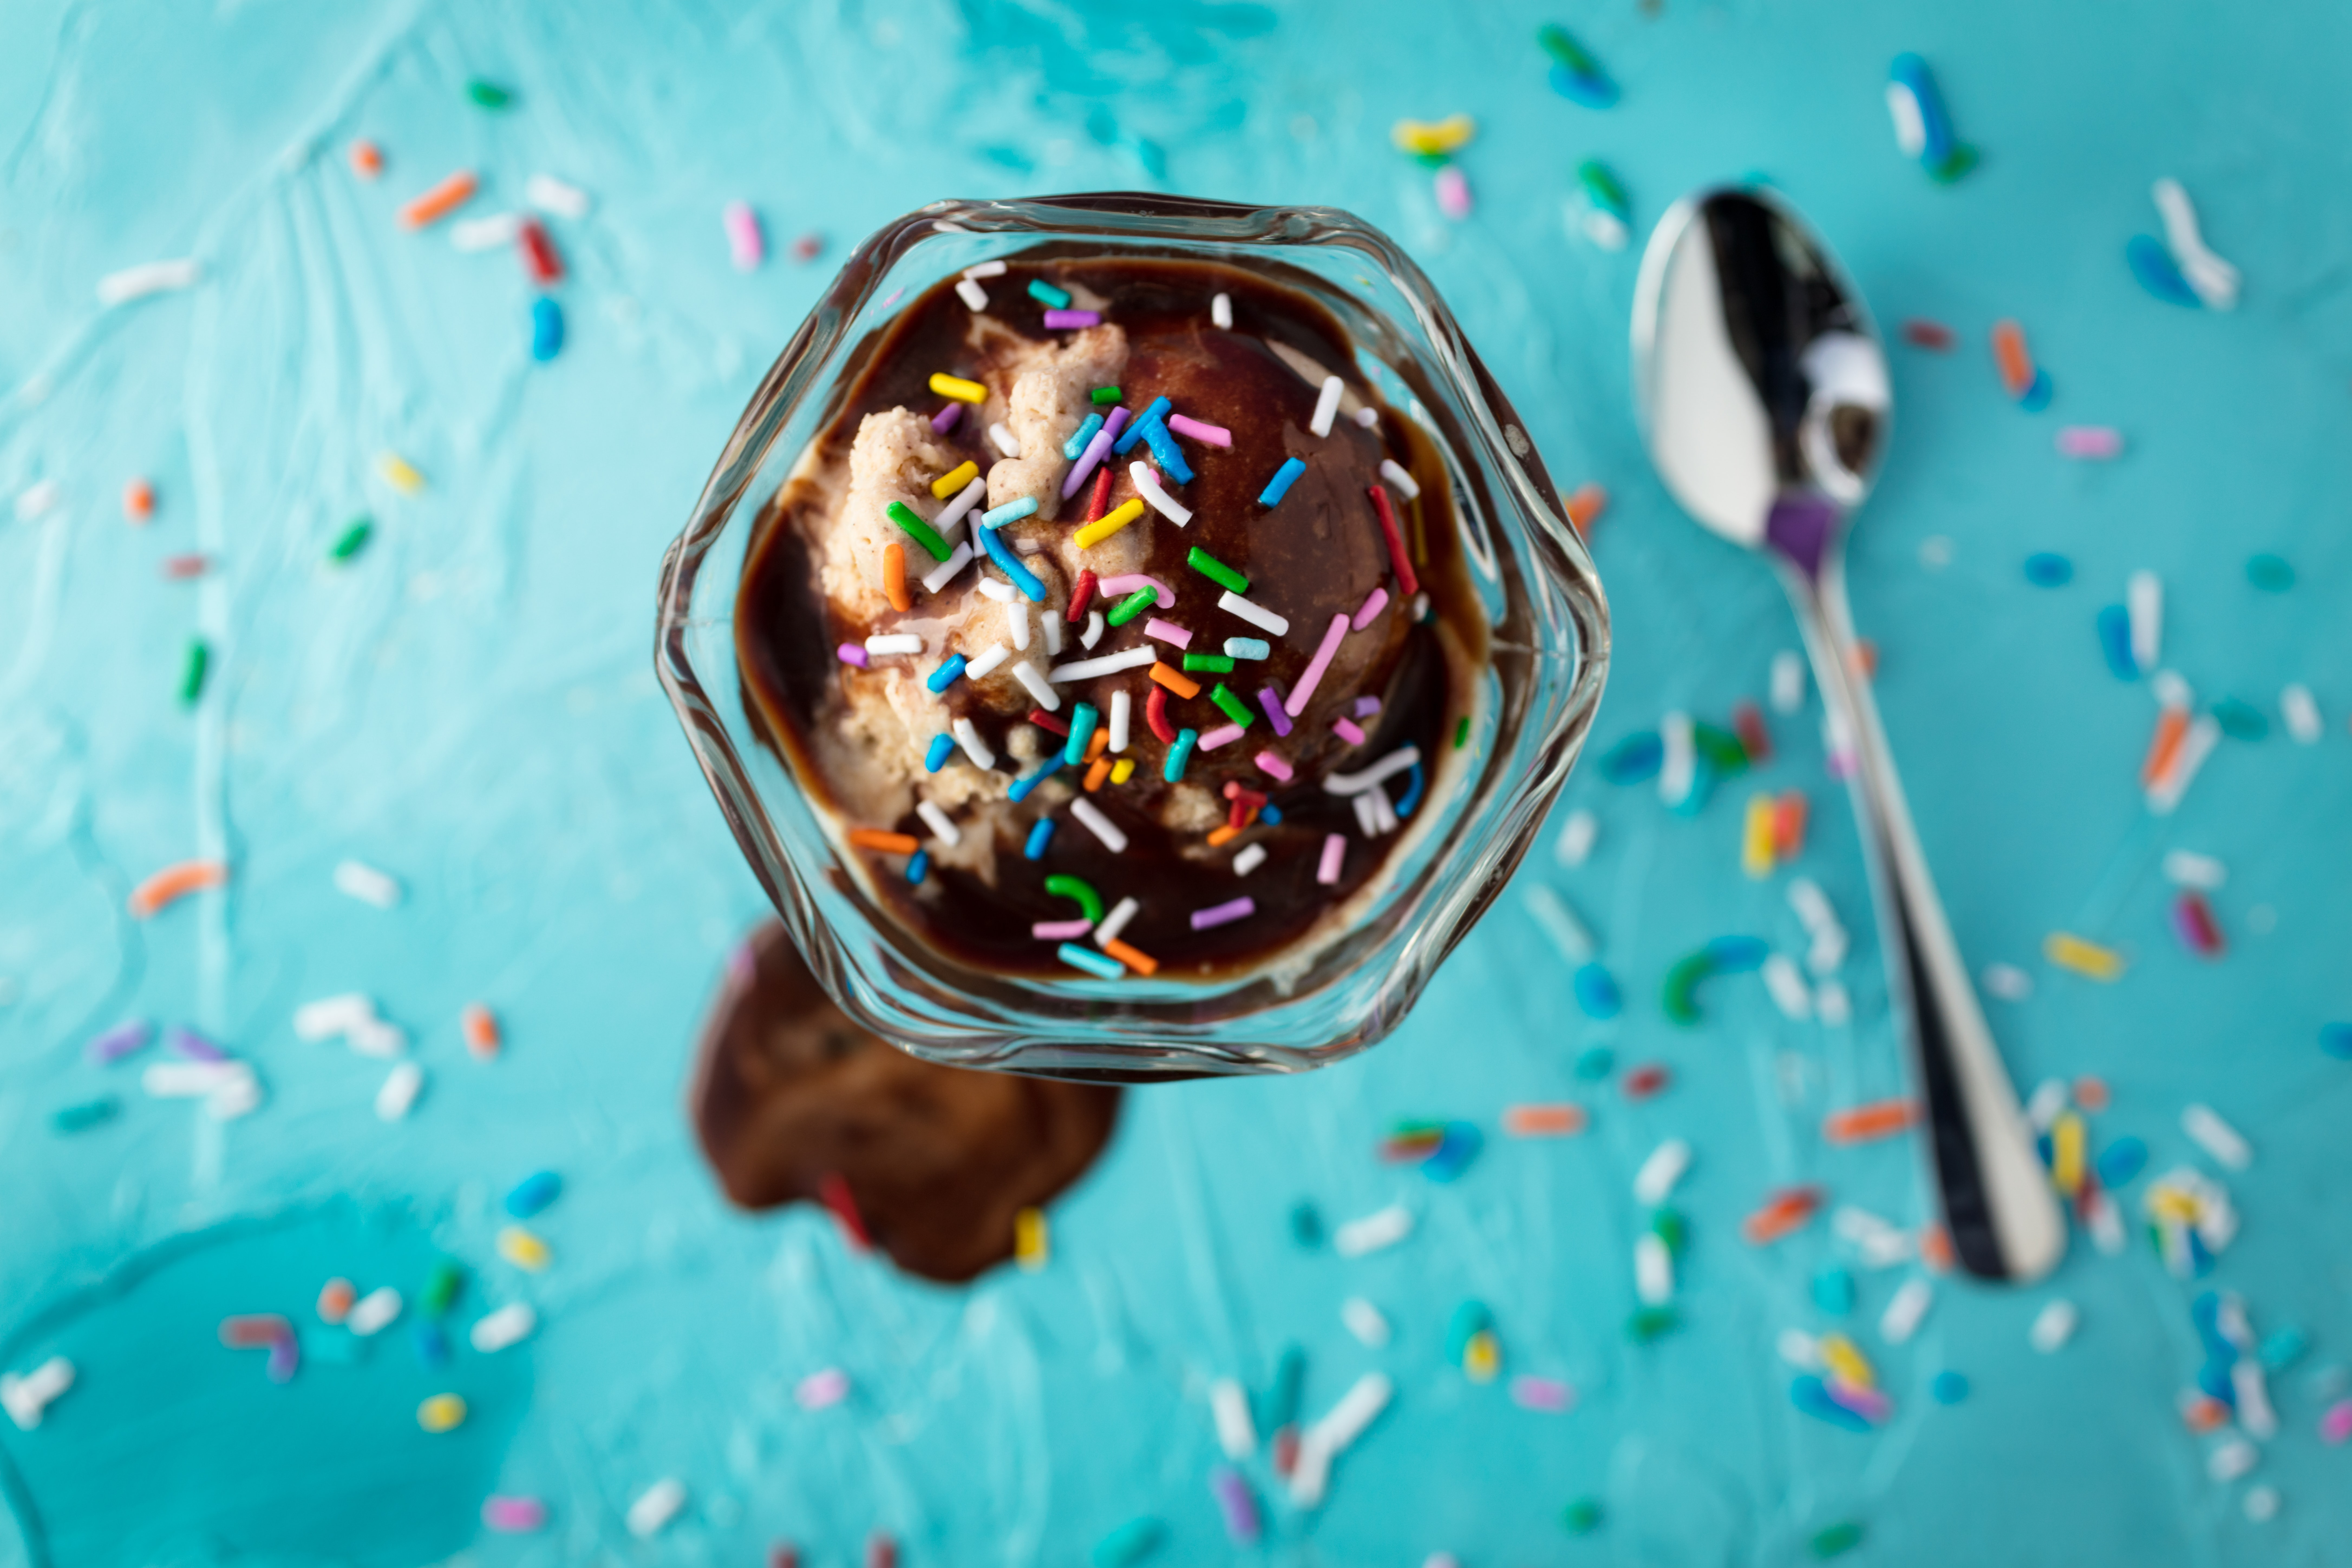 ice cream in glass beside spoon